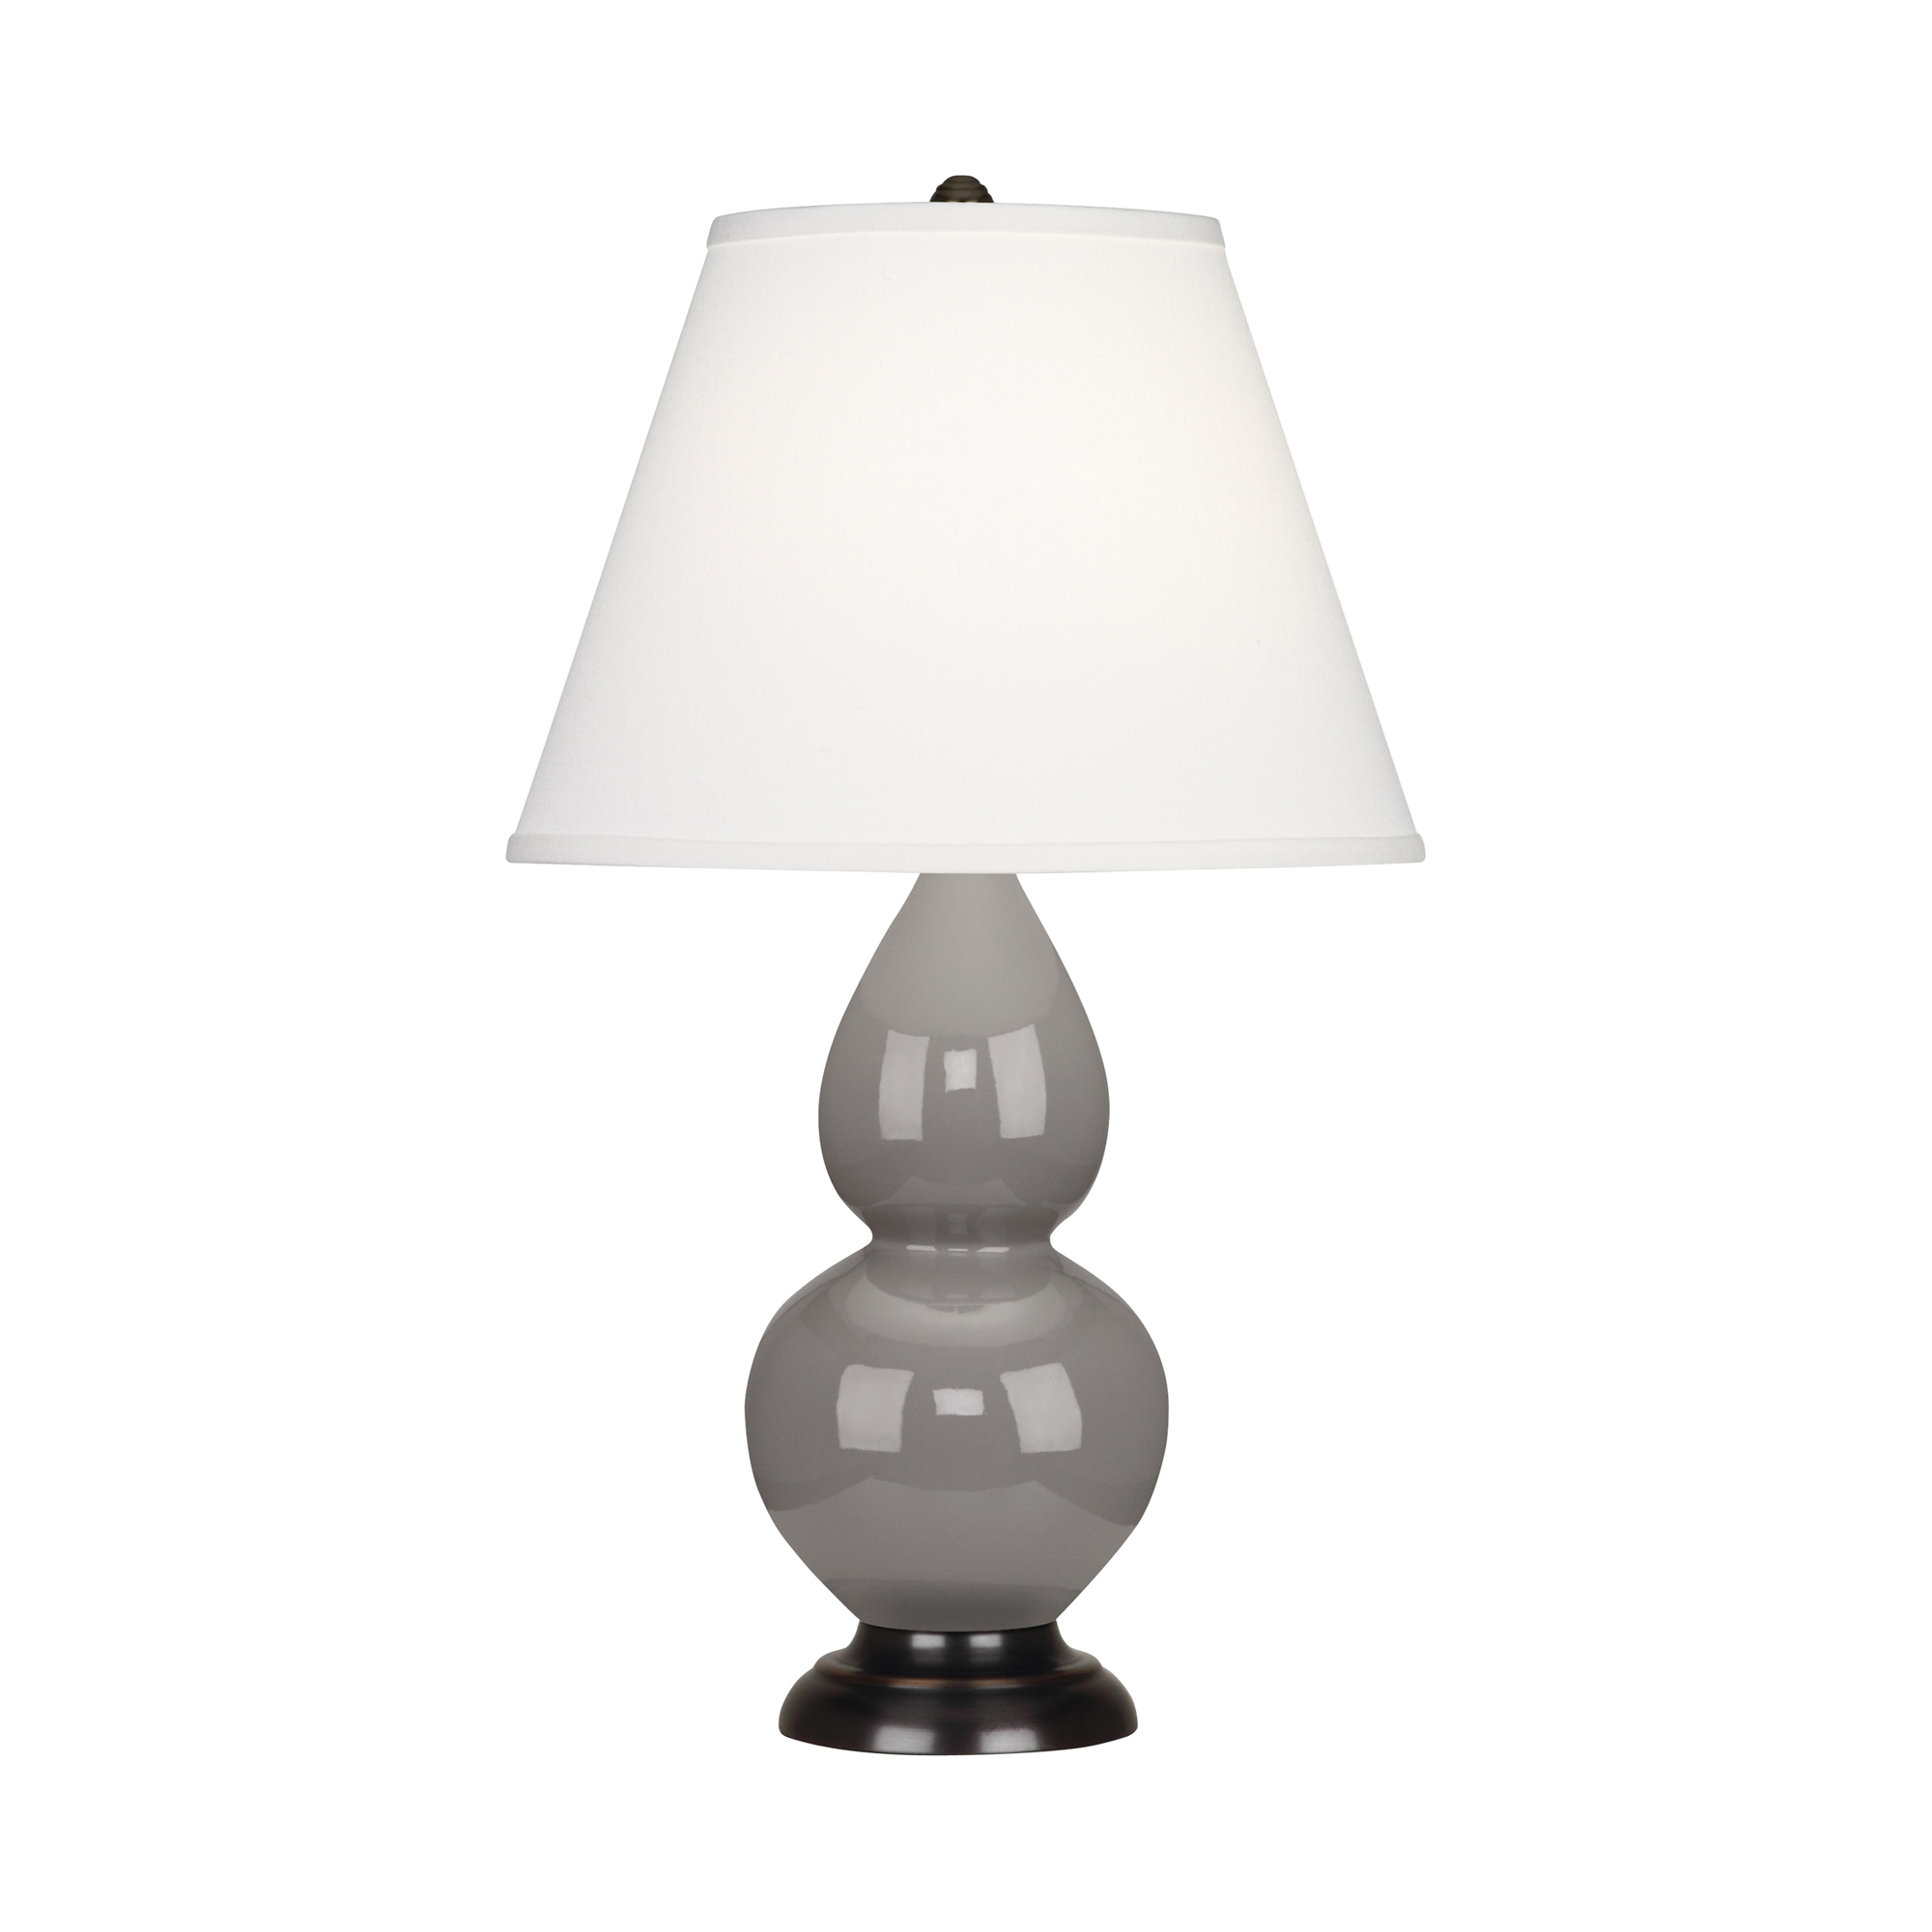 Small Double Gourd Accent Lamp Style #1769X